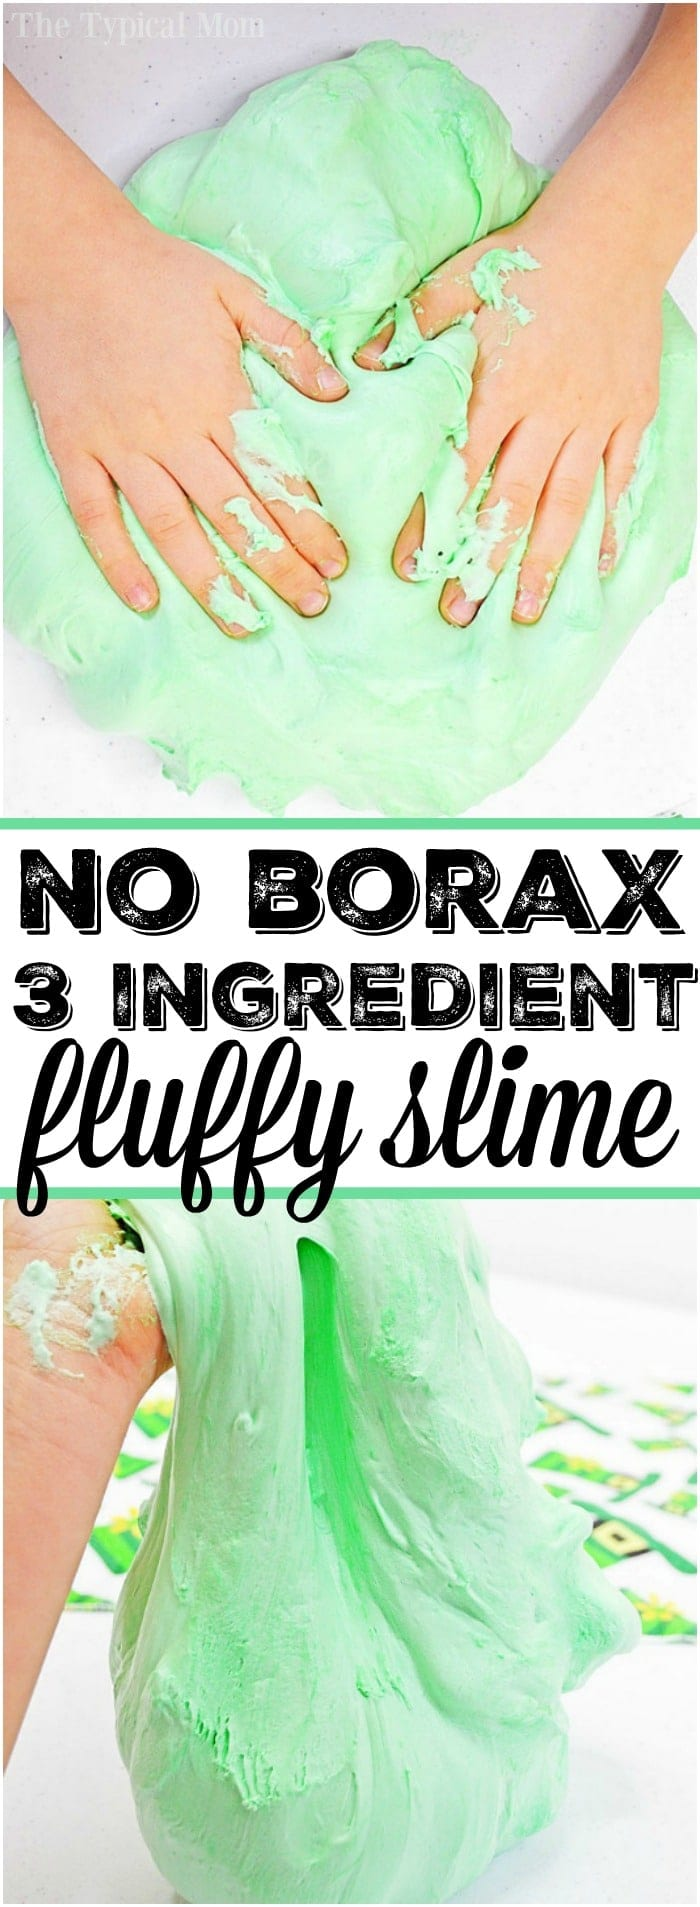 Here is a slime made with shaving cream and 2 other ingredients without borax at all. Safe for kids to make and fluffy to the touch. Create any color you like for the holidays or a slime birthday party activity. It's easy to make goo your kids will love. #shavingcream #slime #green #stpatricksday #easy #kidsafe #boraxfree #no #borax #fluffy